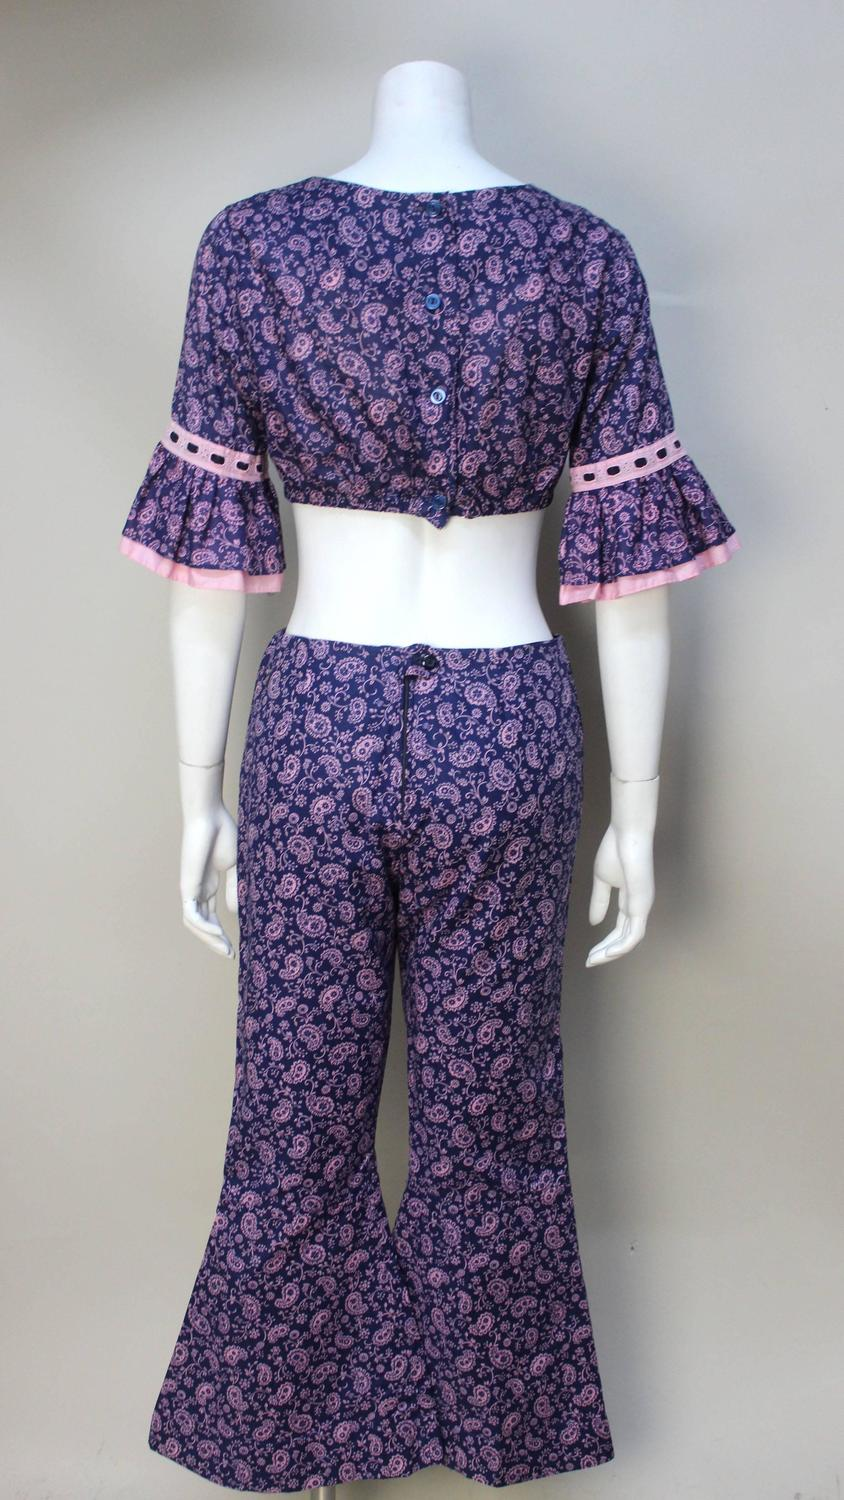 Rare 1960s Bobbie Brooks Mod 2 Piece Paisley Pant And Top